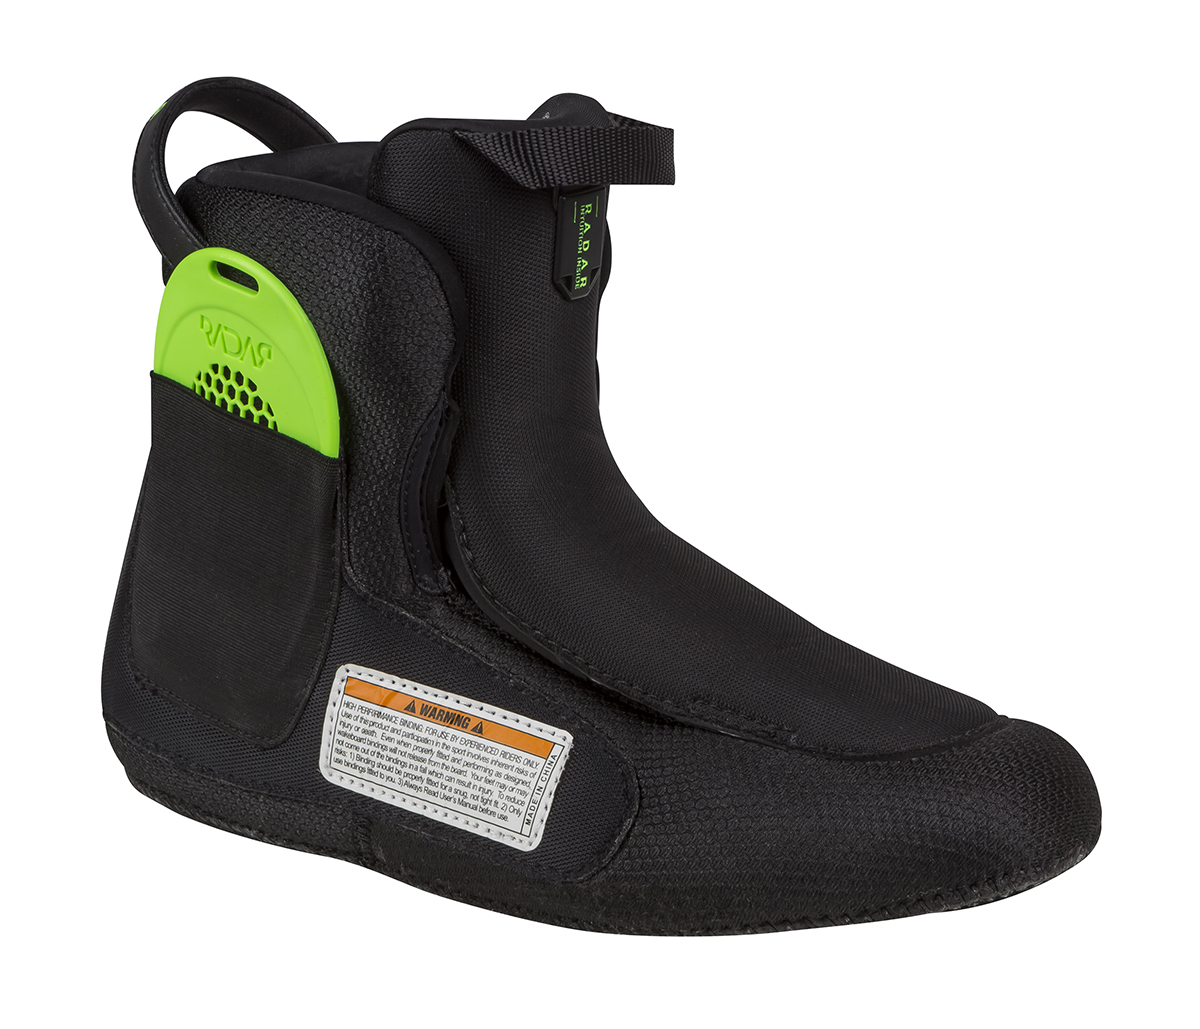 VAPOR BOOT LINER W/ INSOLE - RIGHT RADAR 2019